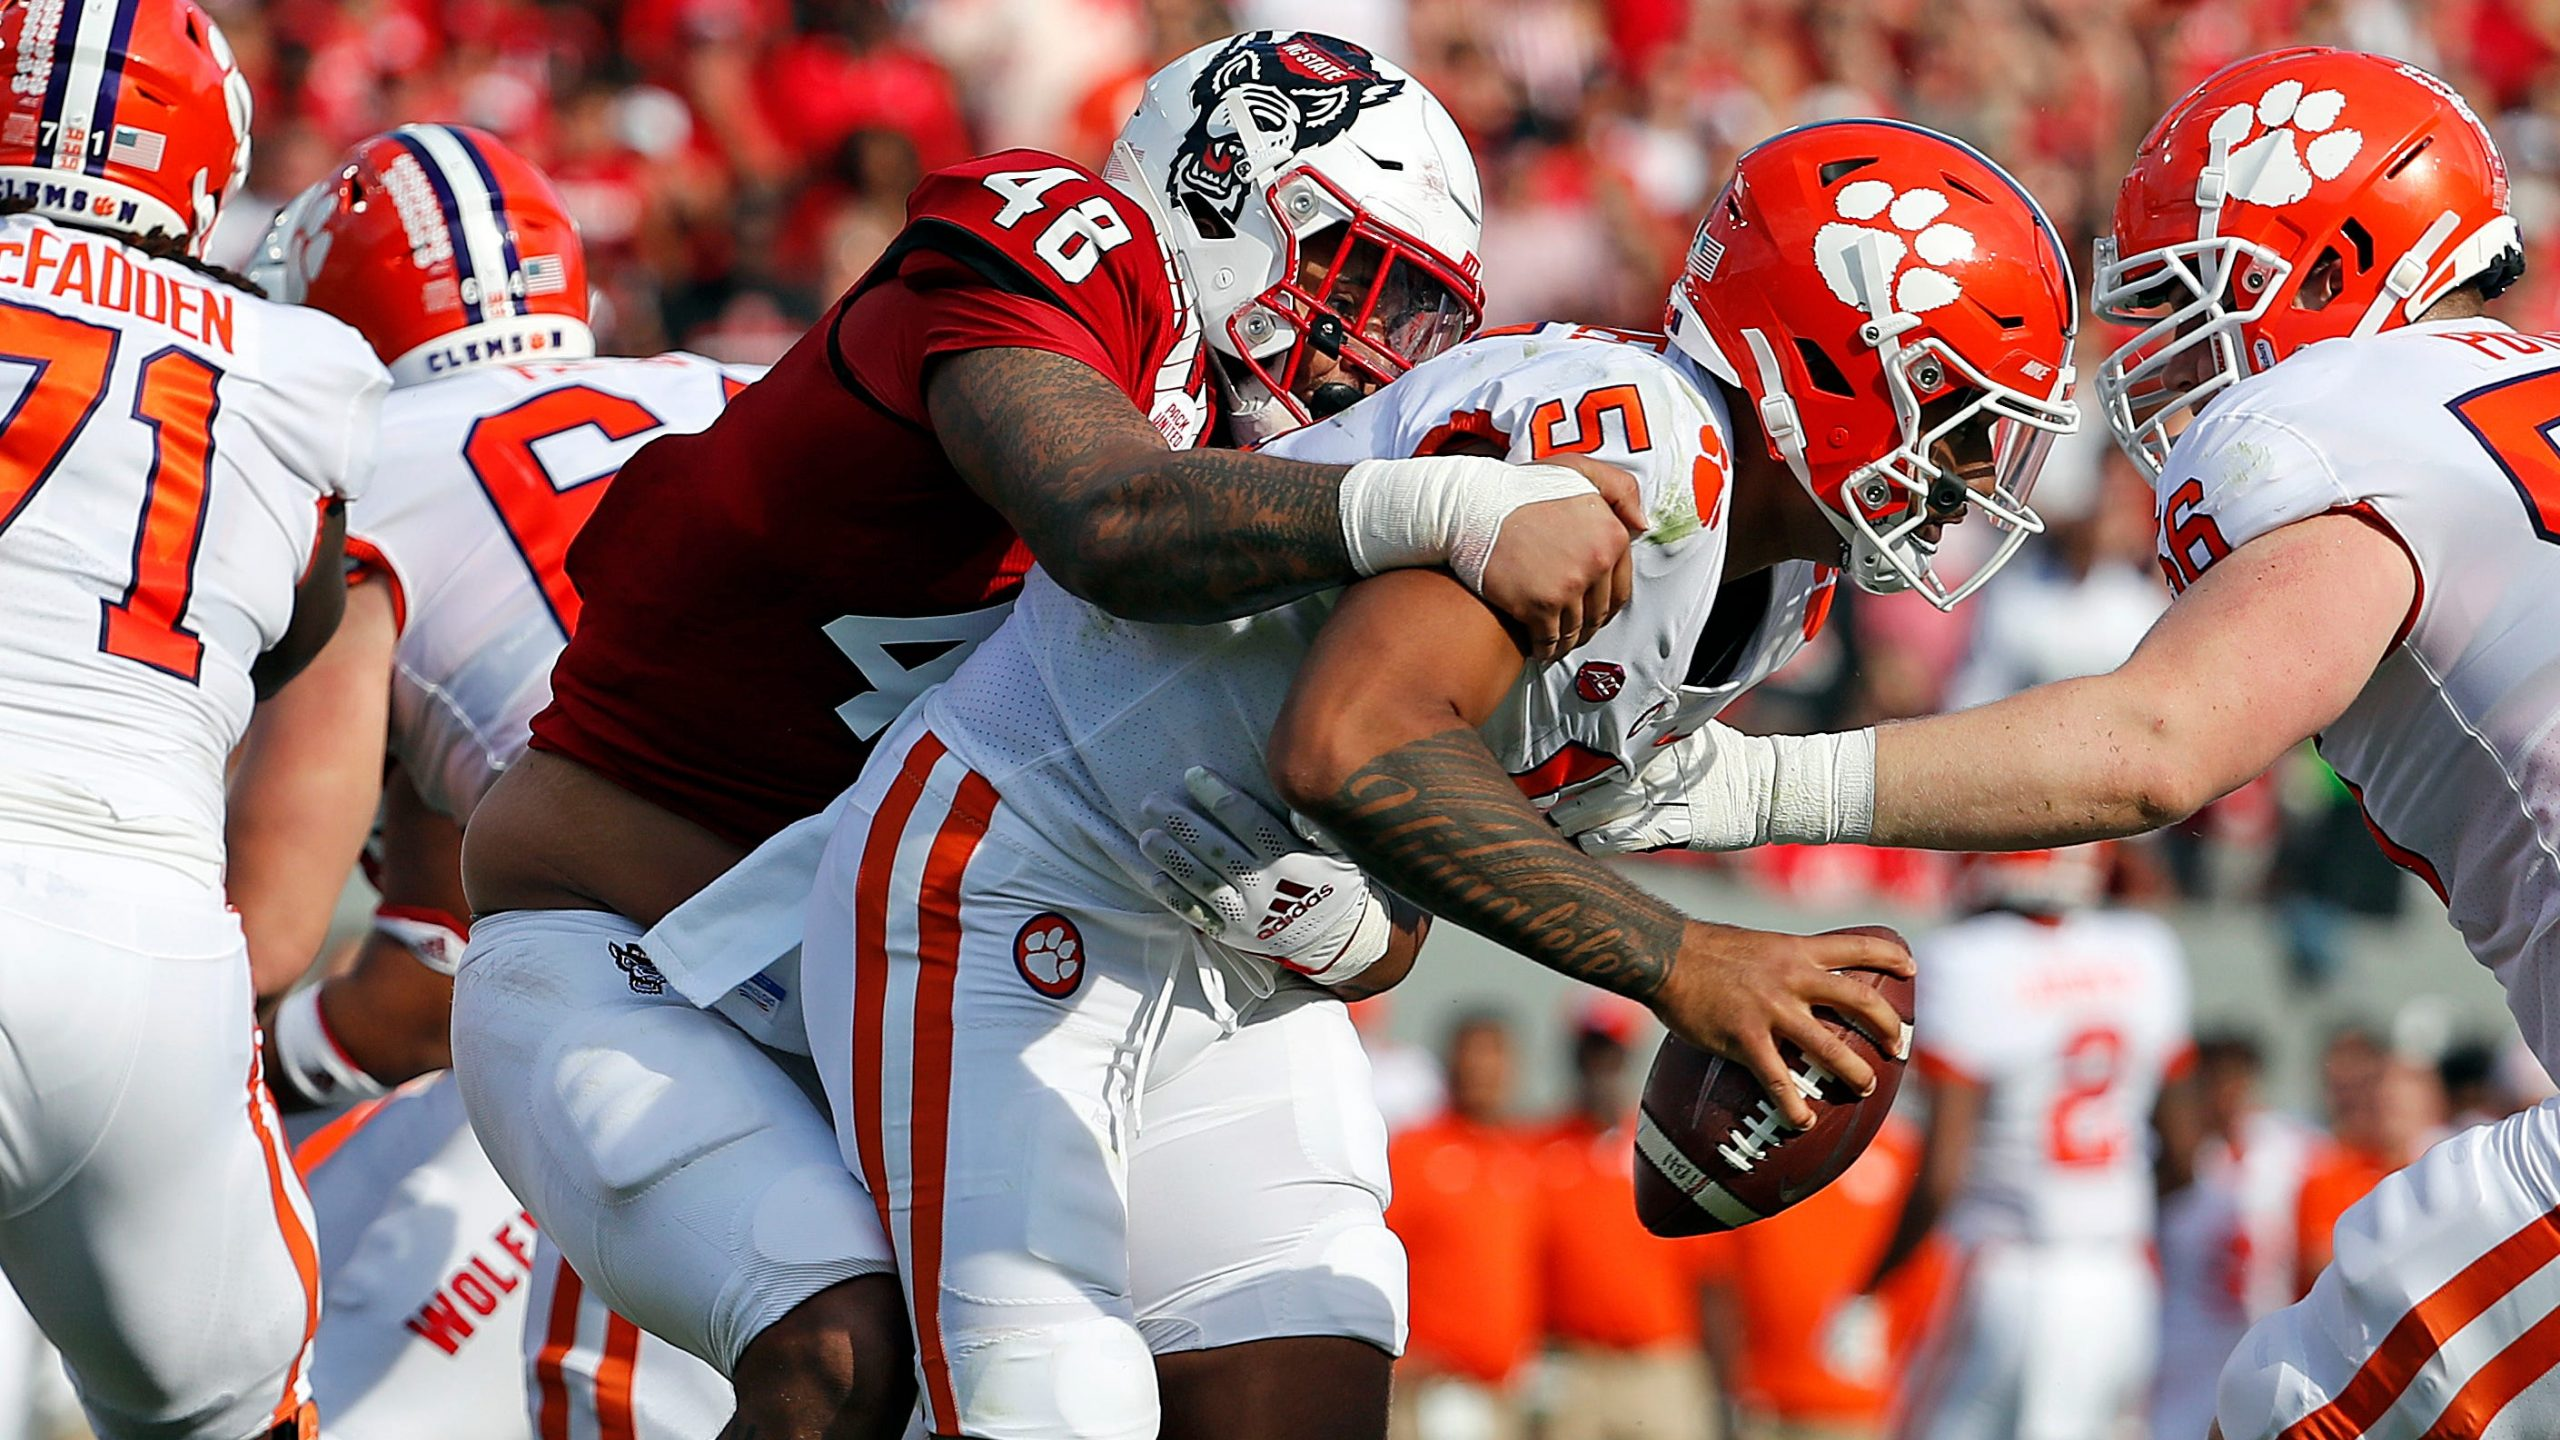 What Exactly Happened To Clemson's Offense?